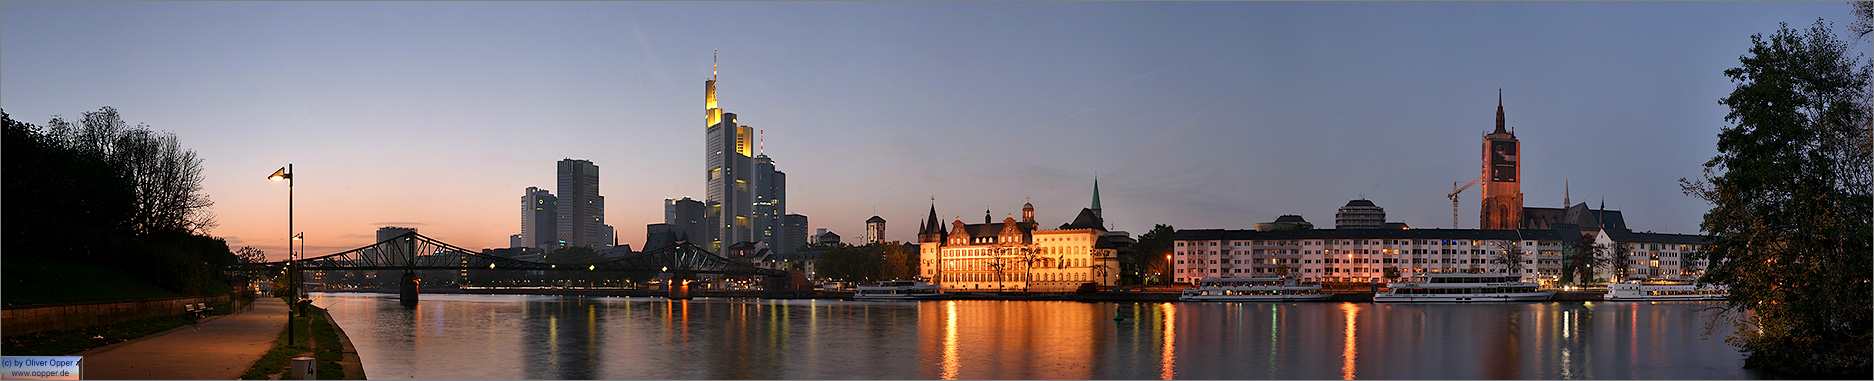 Panorama Frankfurt - Skyline - p081 - (c) by Oliver Opper